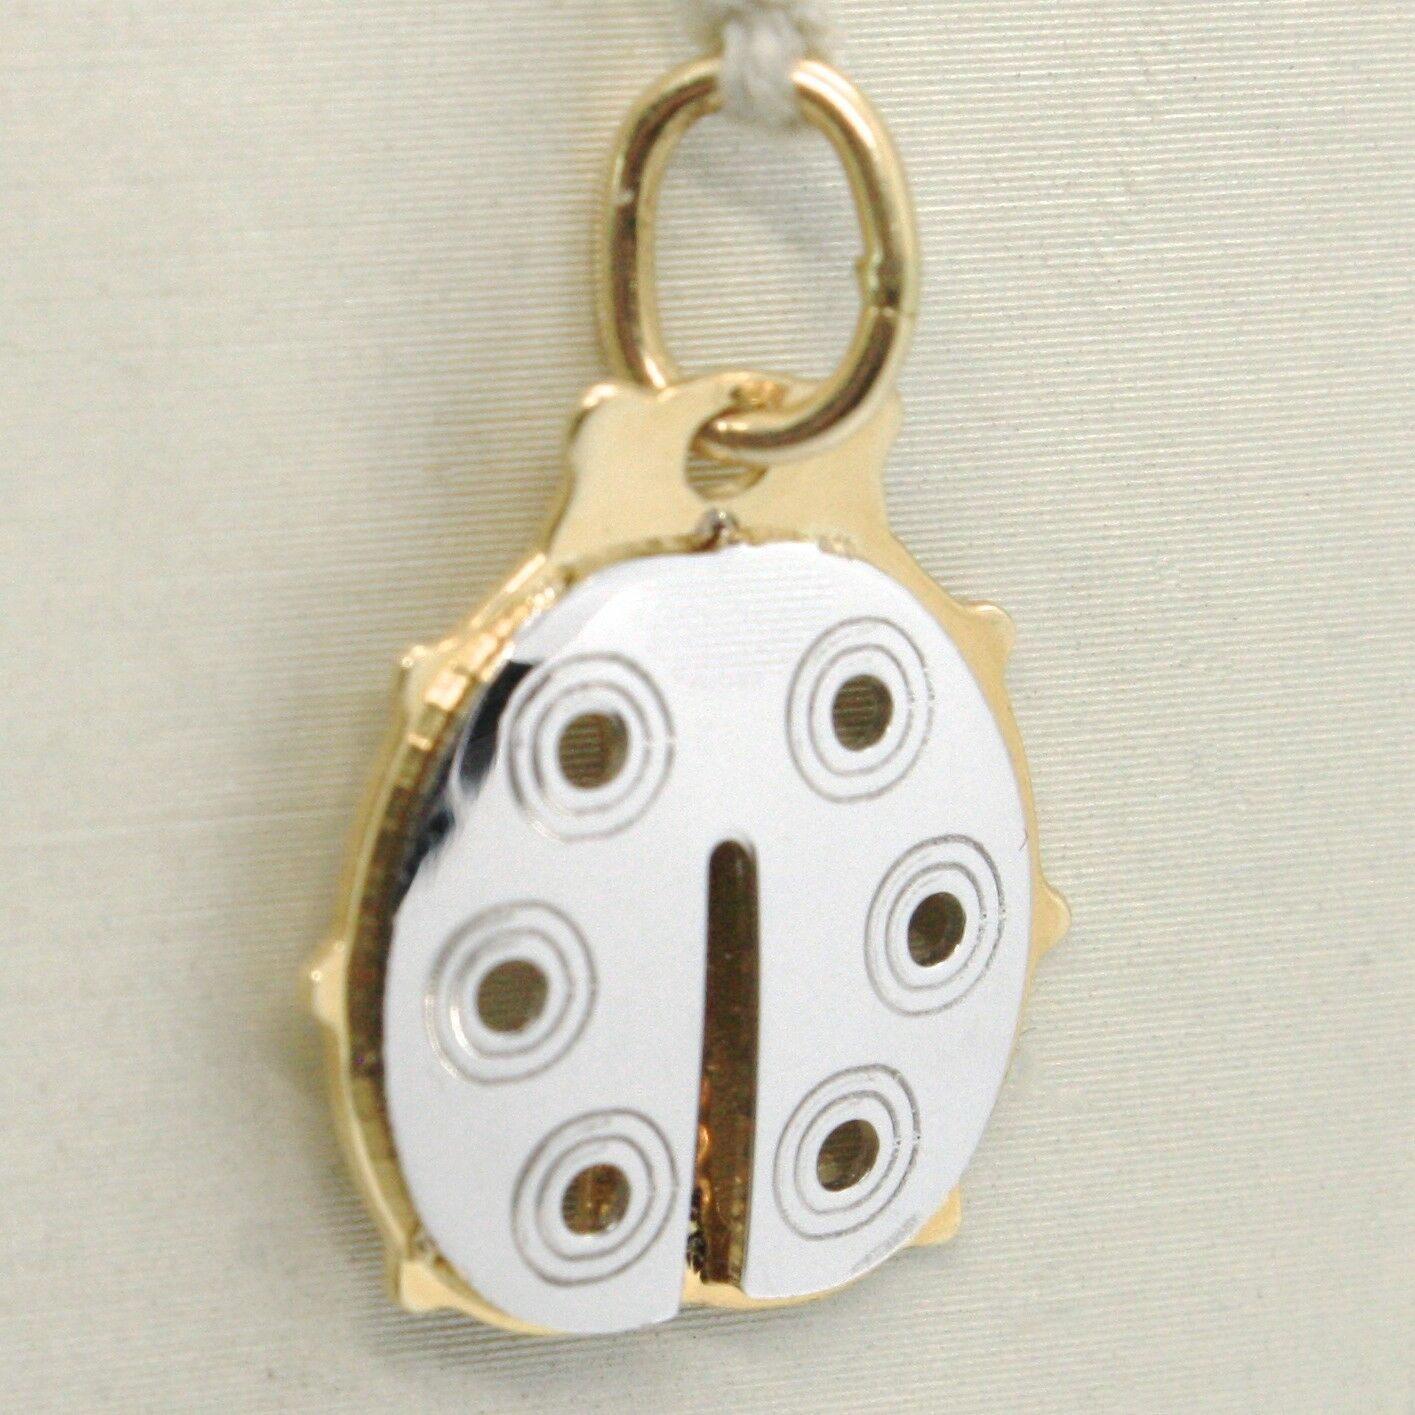 18K YELLOW & WHITE GOLD LADYBUG PENDANT, CHARMS, FINELY WORKED, MADE IN ITALY